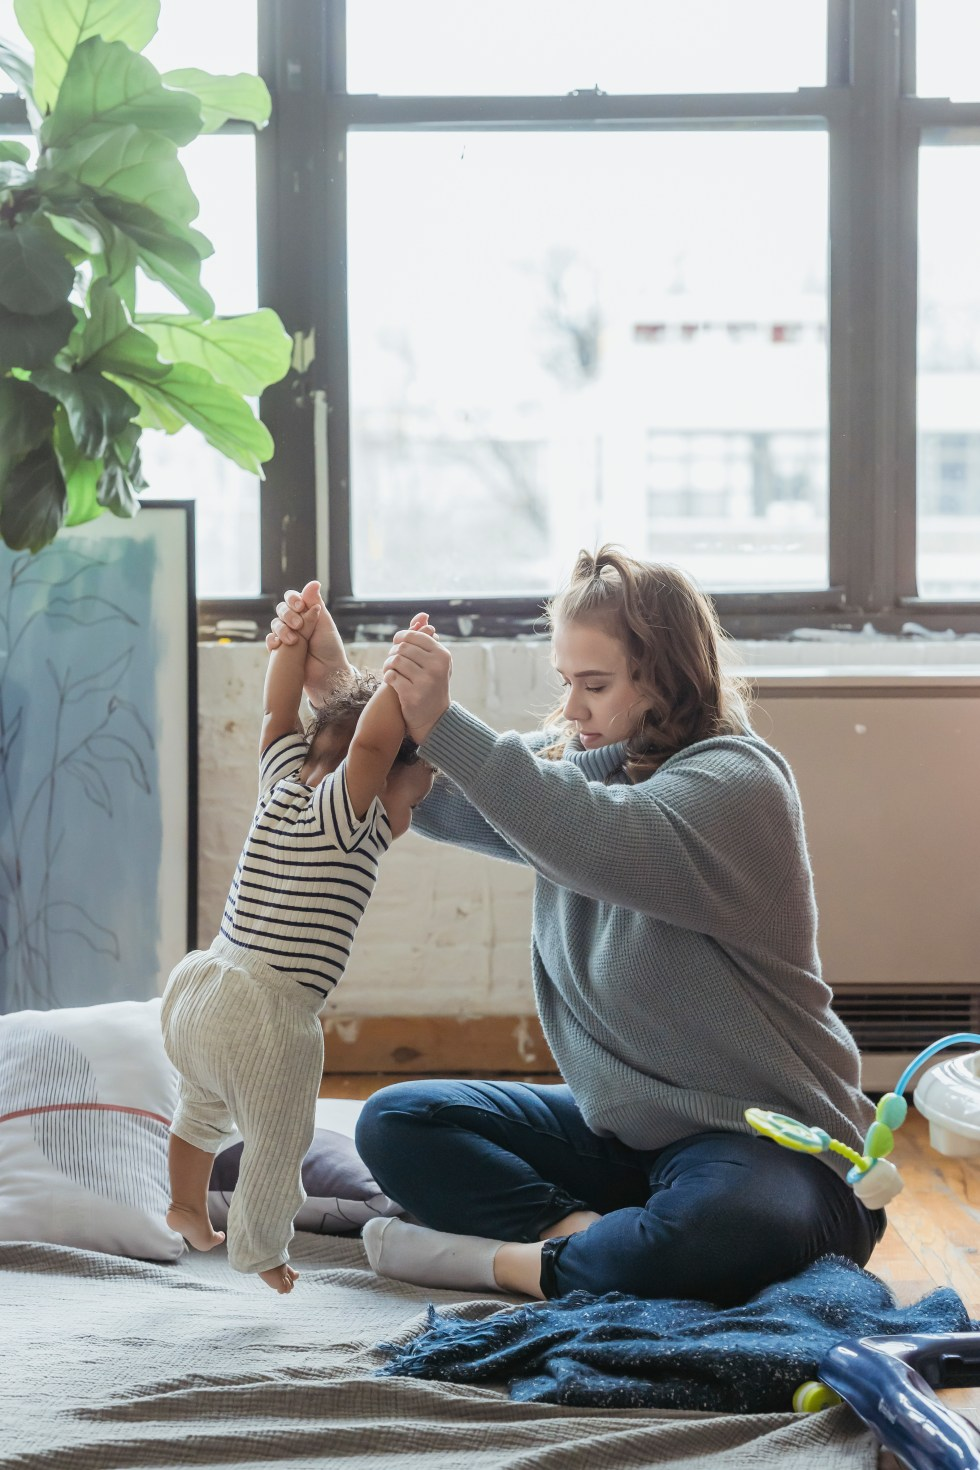 Full body positive mother in casual clothes teaching adorable toddler to walk while sitting on floor with legs crossed in light room